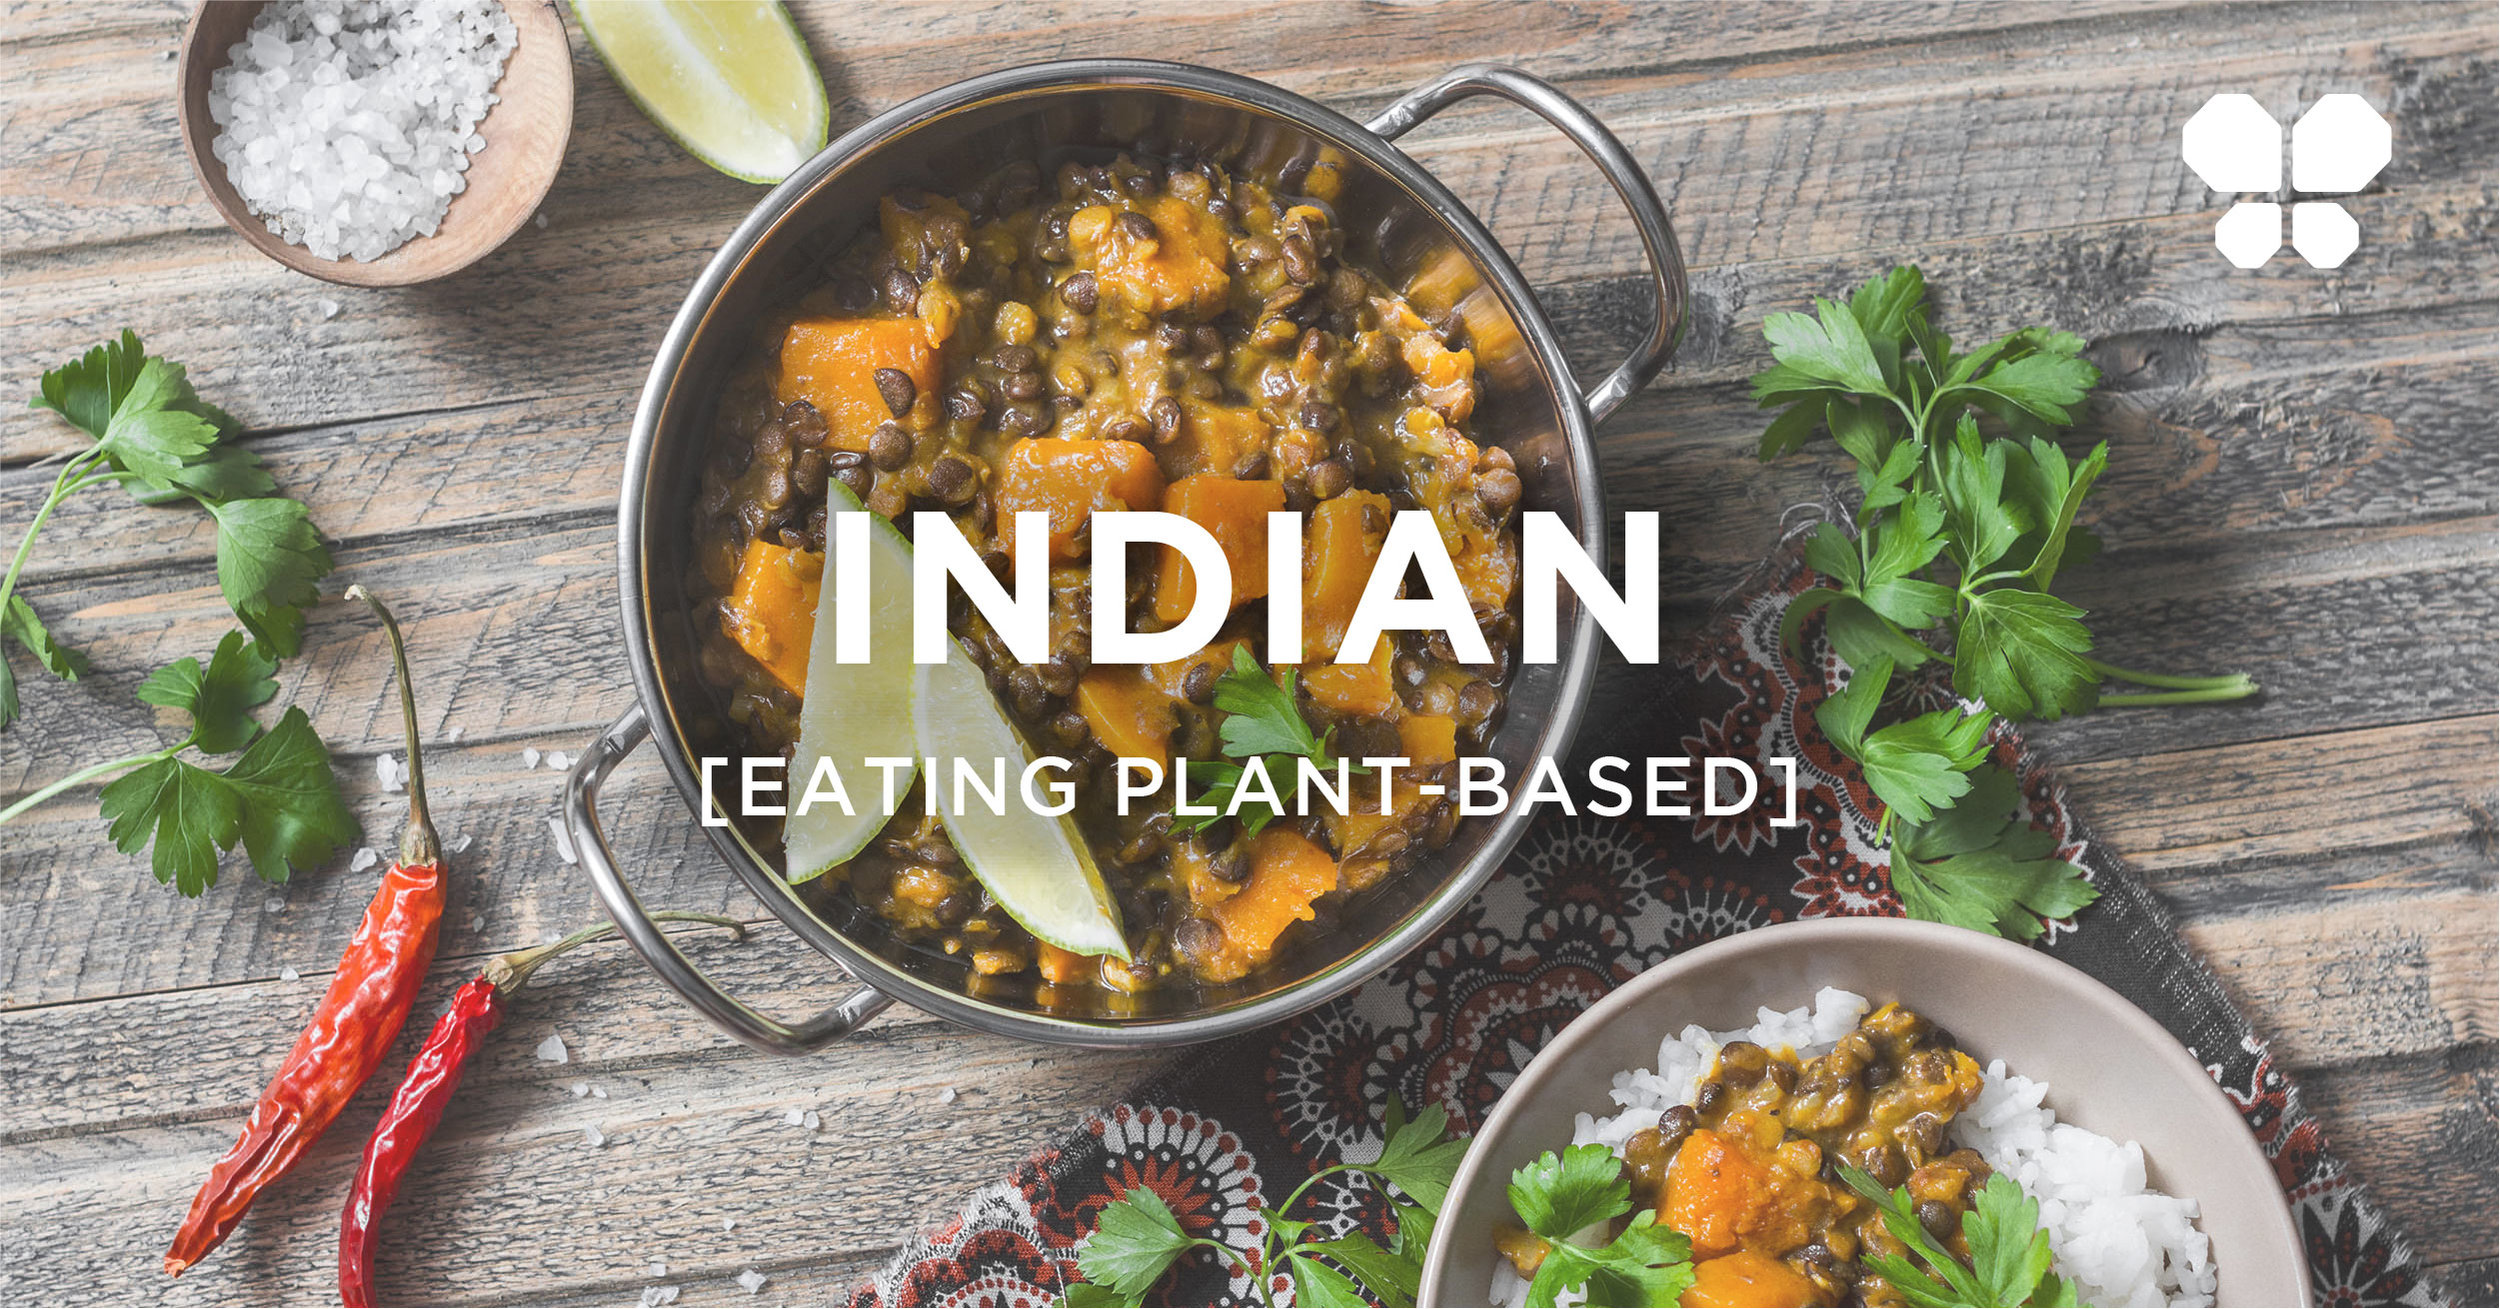 Eating out vegan Indian cuisine. Plant-based tips for eating Indian food.